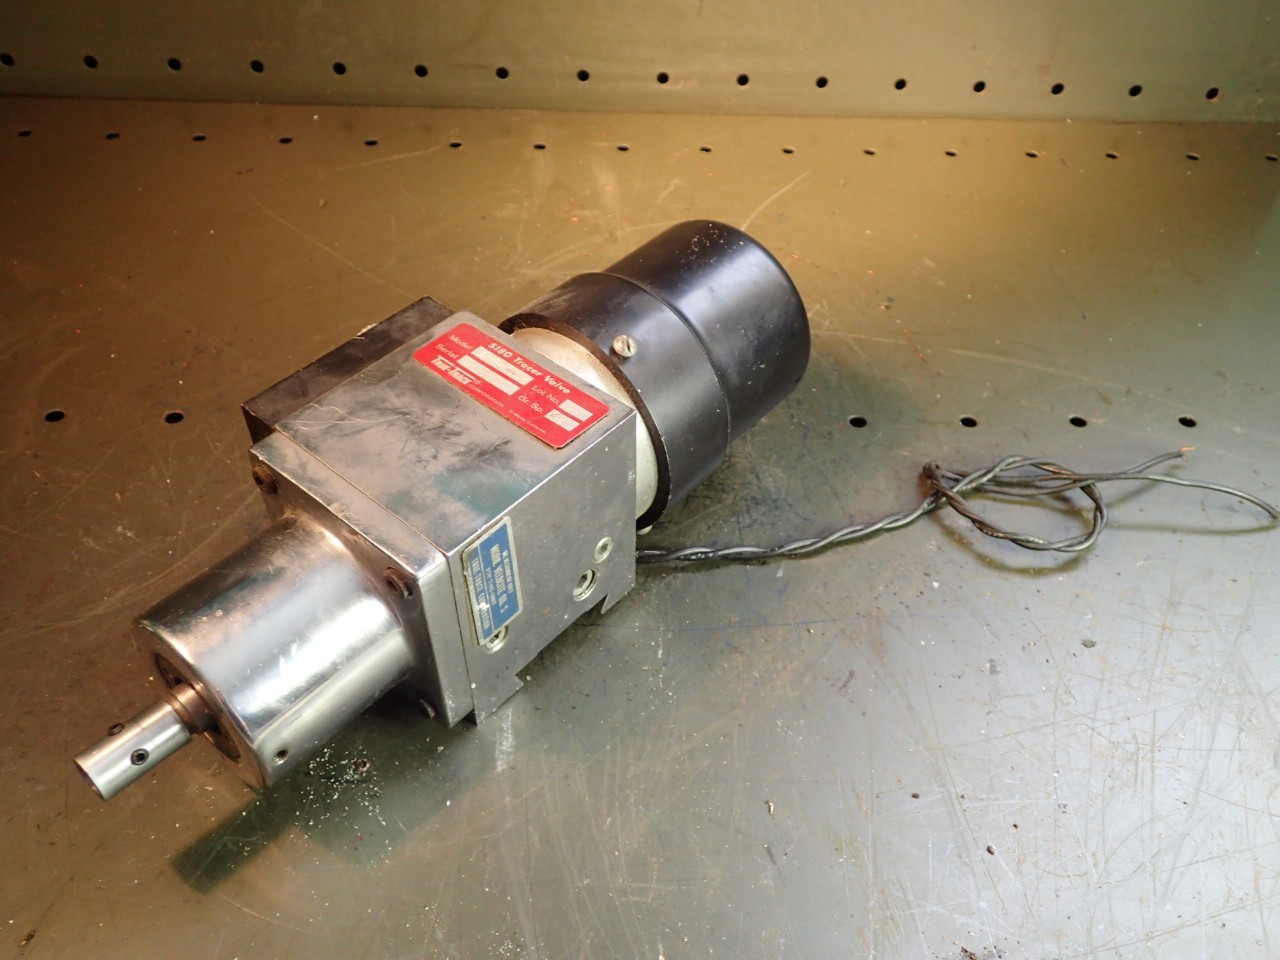 True Trace S180 Model 1056-01 Hydraulic Tracer Valve, Used in Good Condition